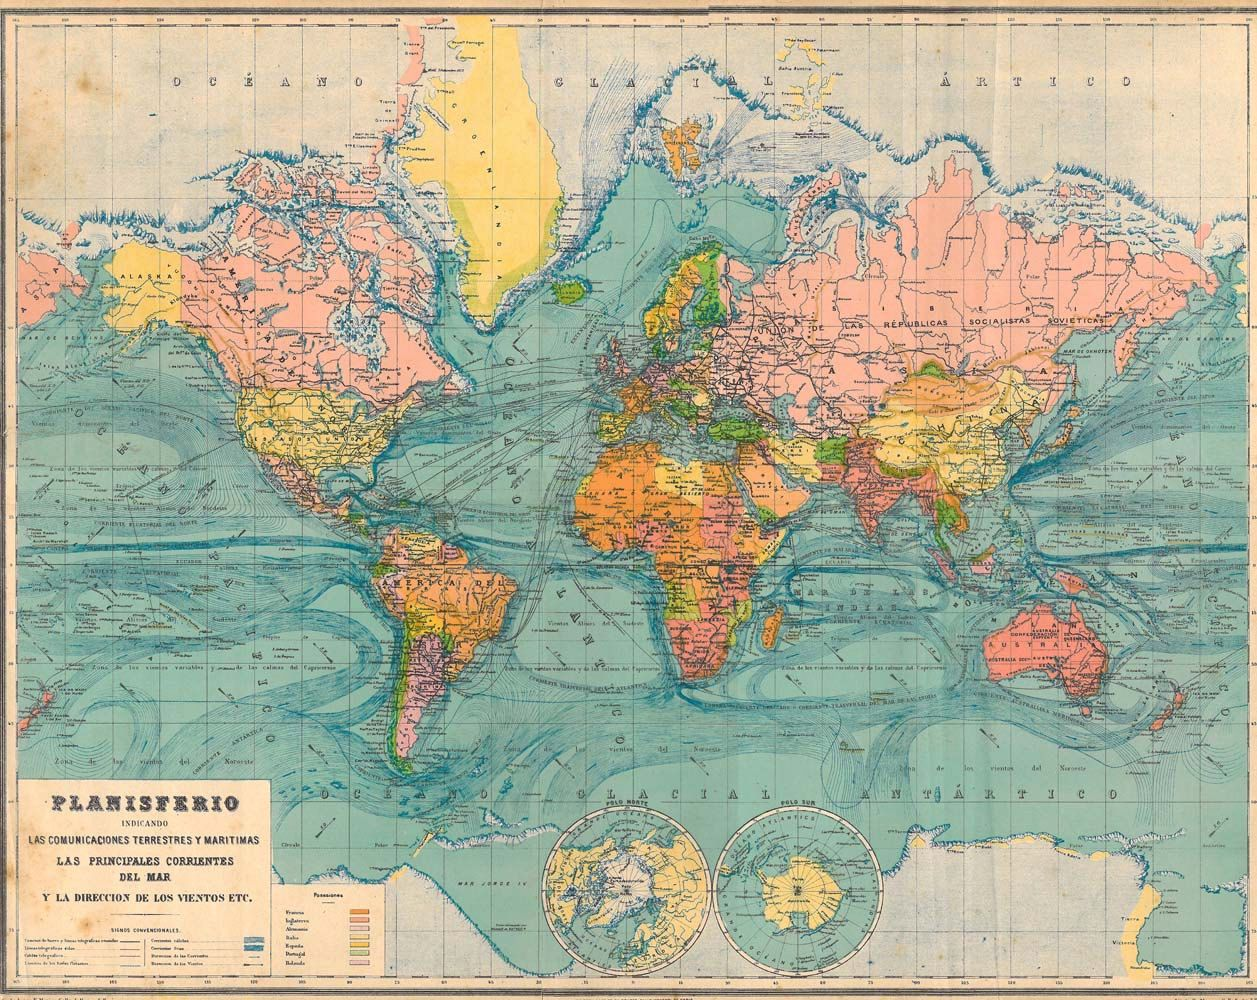 Antique world map 1929 very large 26 by 21 inches publicscrutiny Images